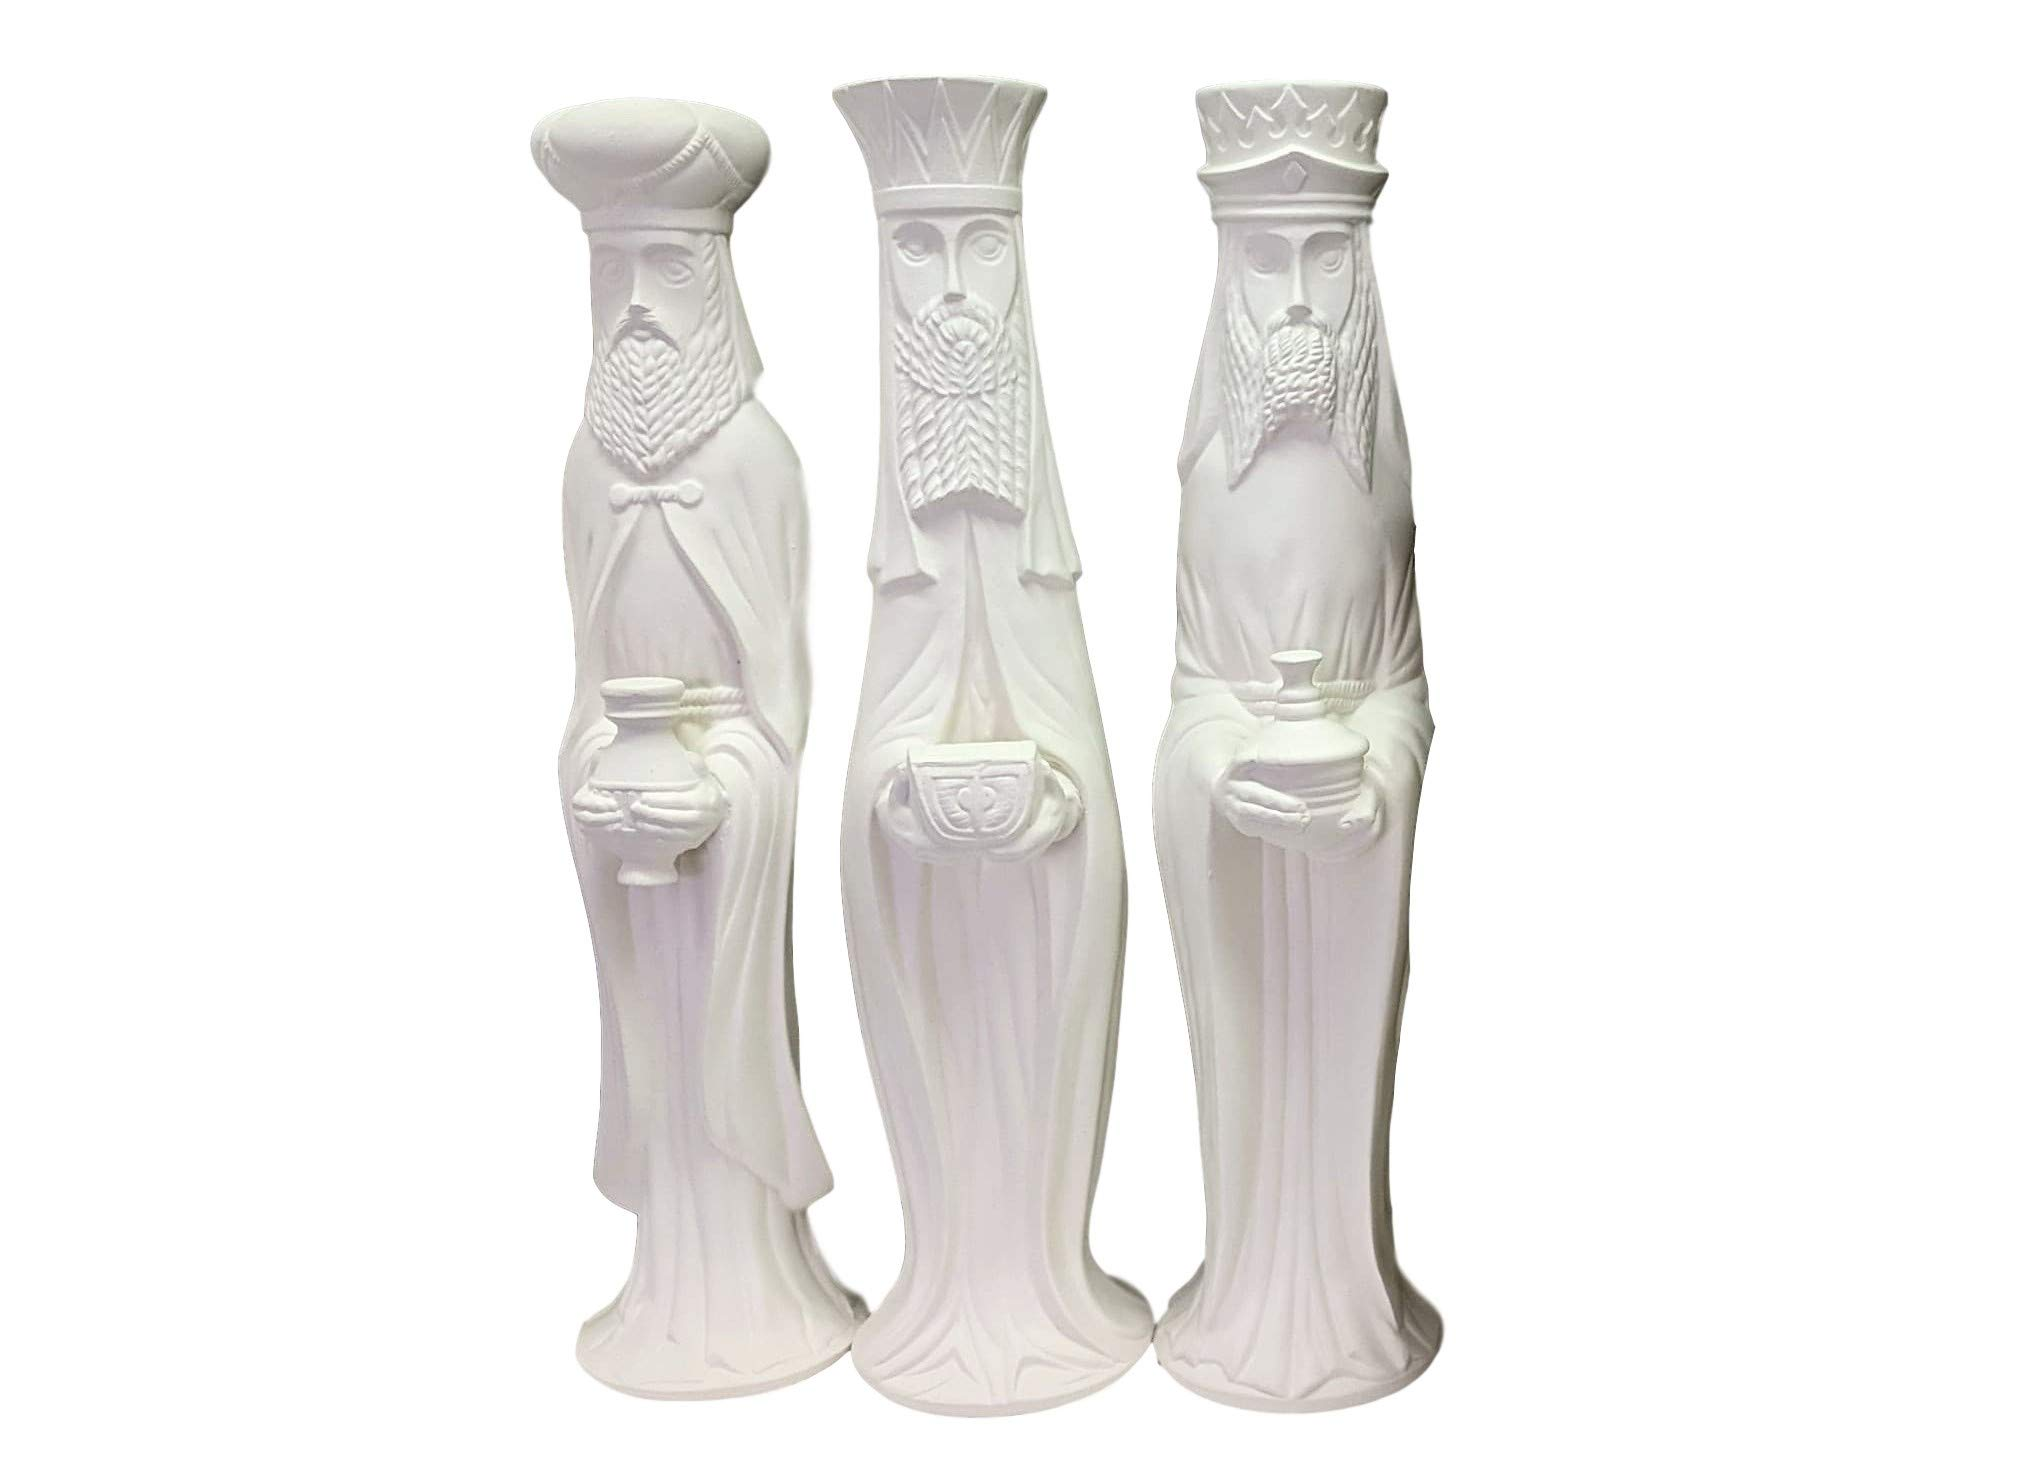 3 Wisemen, 13 Inches, Ready to Paint Ceramic Bisque by Ceramics In Montana